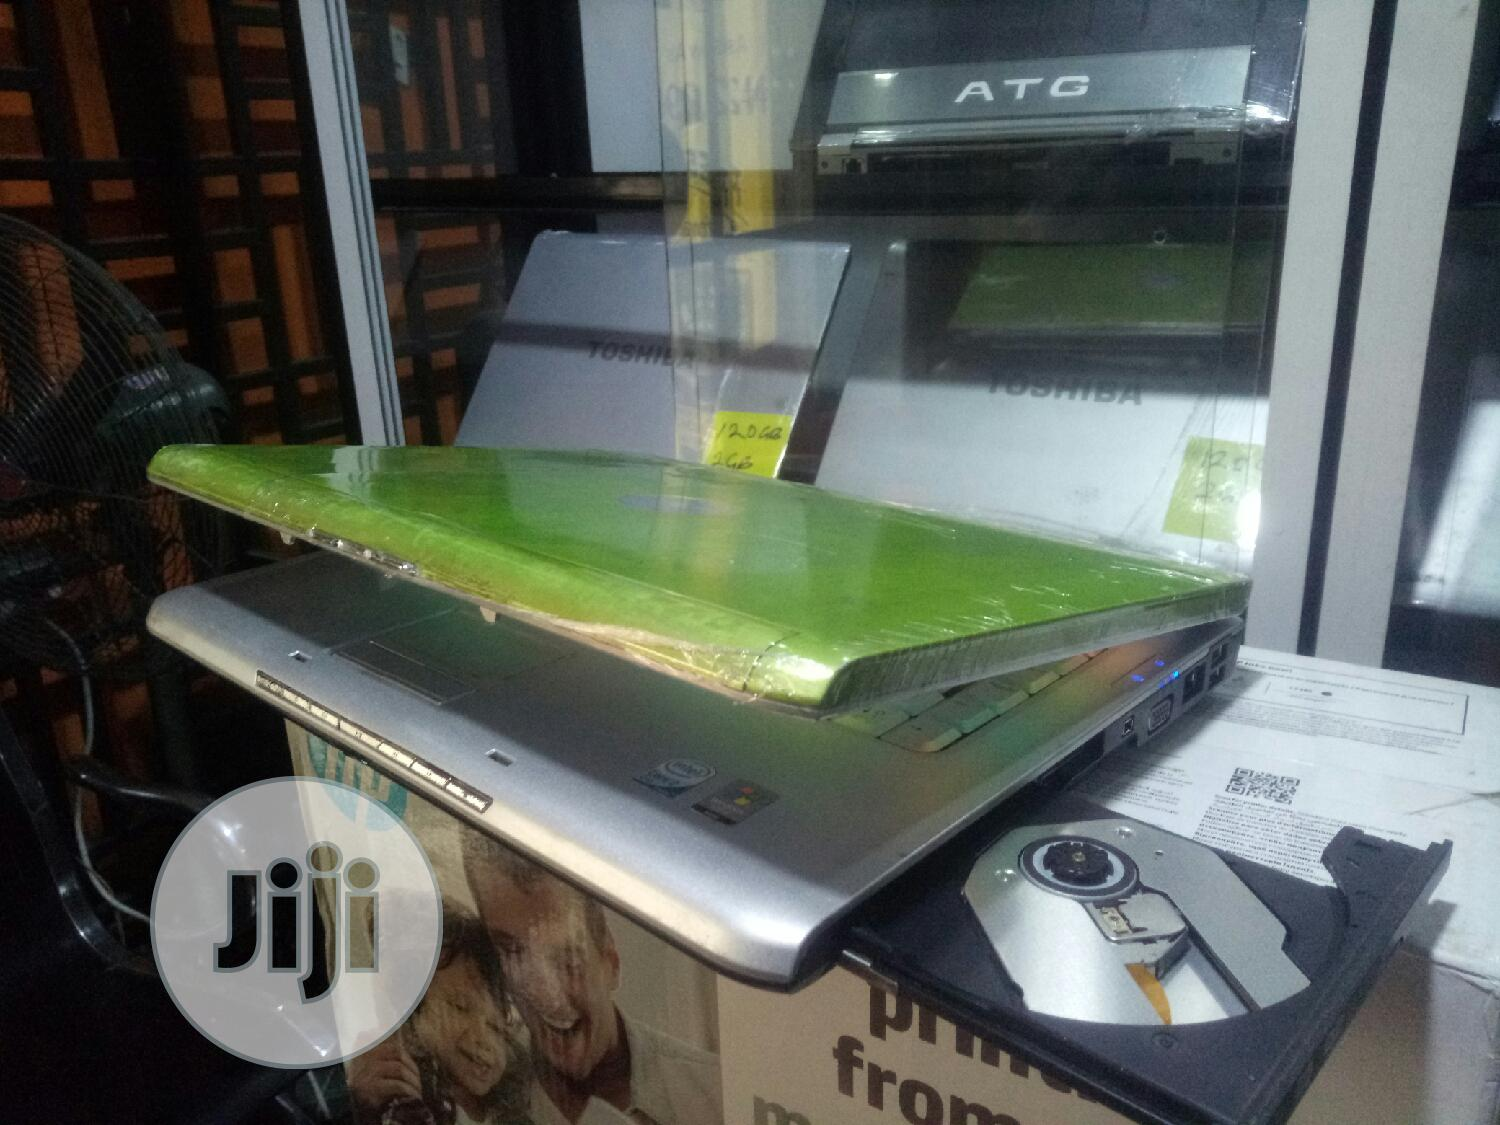 Laptop Dell 3GB Intel Core 2 Duo HDD 128GB   Laptops & Computers for sale in Port-Harcourt, Rivers State, Nigeria